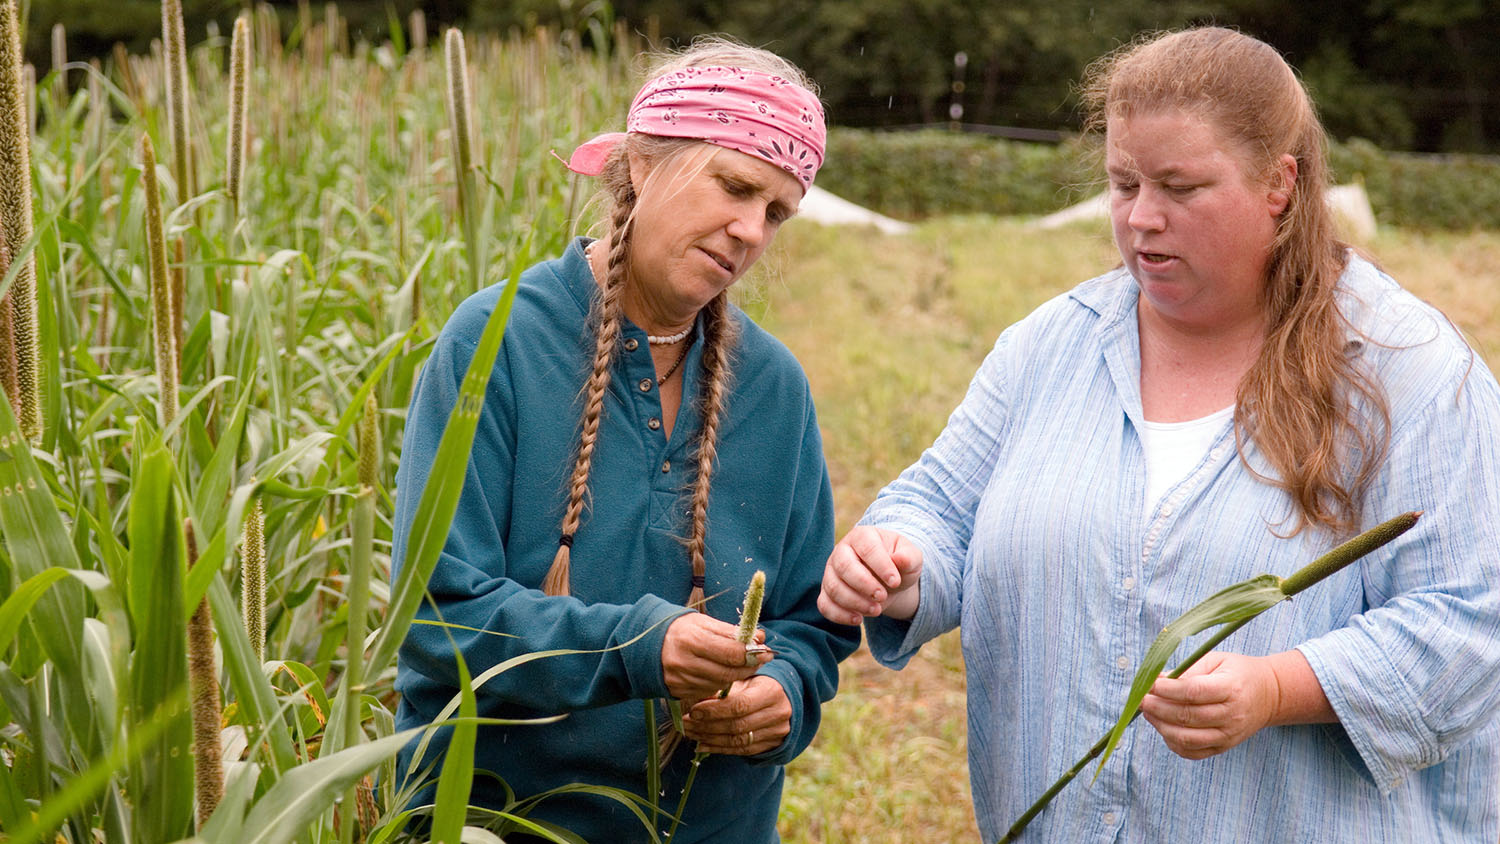 Two farmers consult over a sprig of wheat in a wheat field. One woman wears a pink bandana and has her hair in two long pigtails.